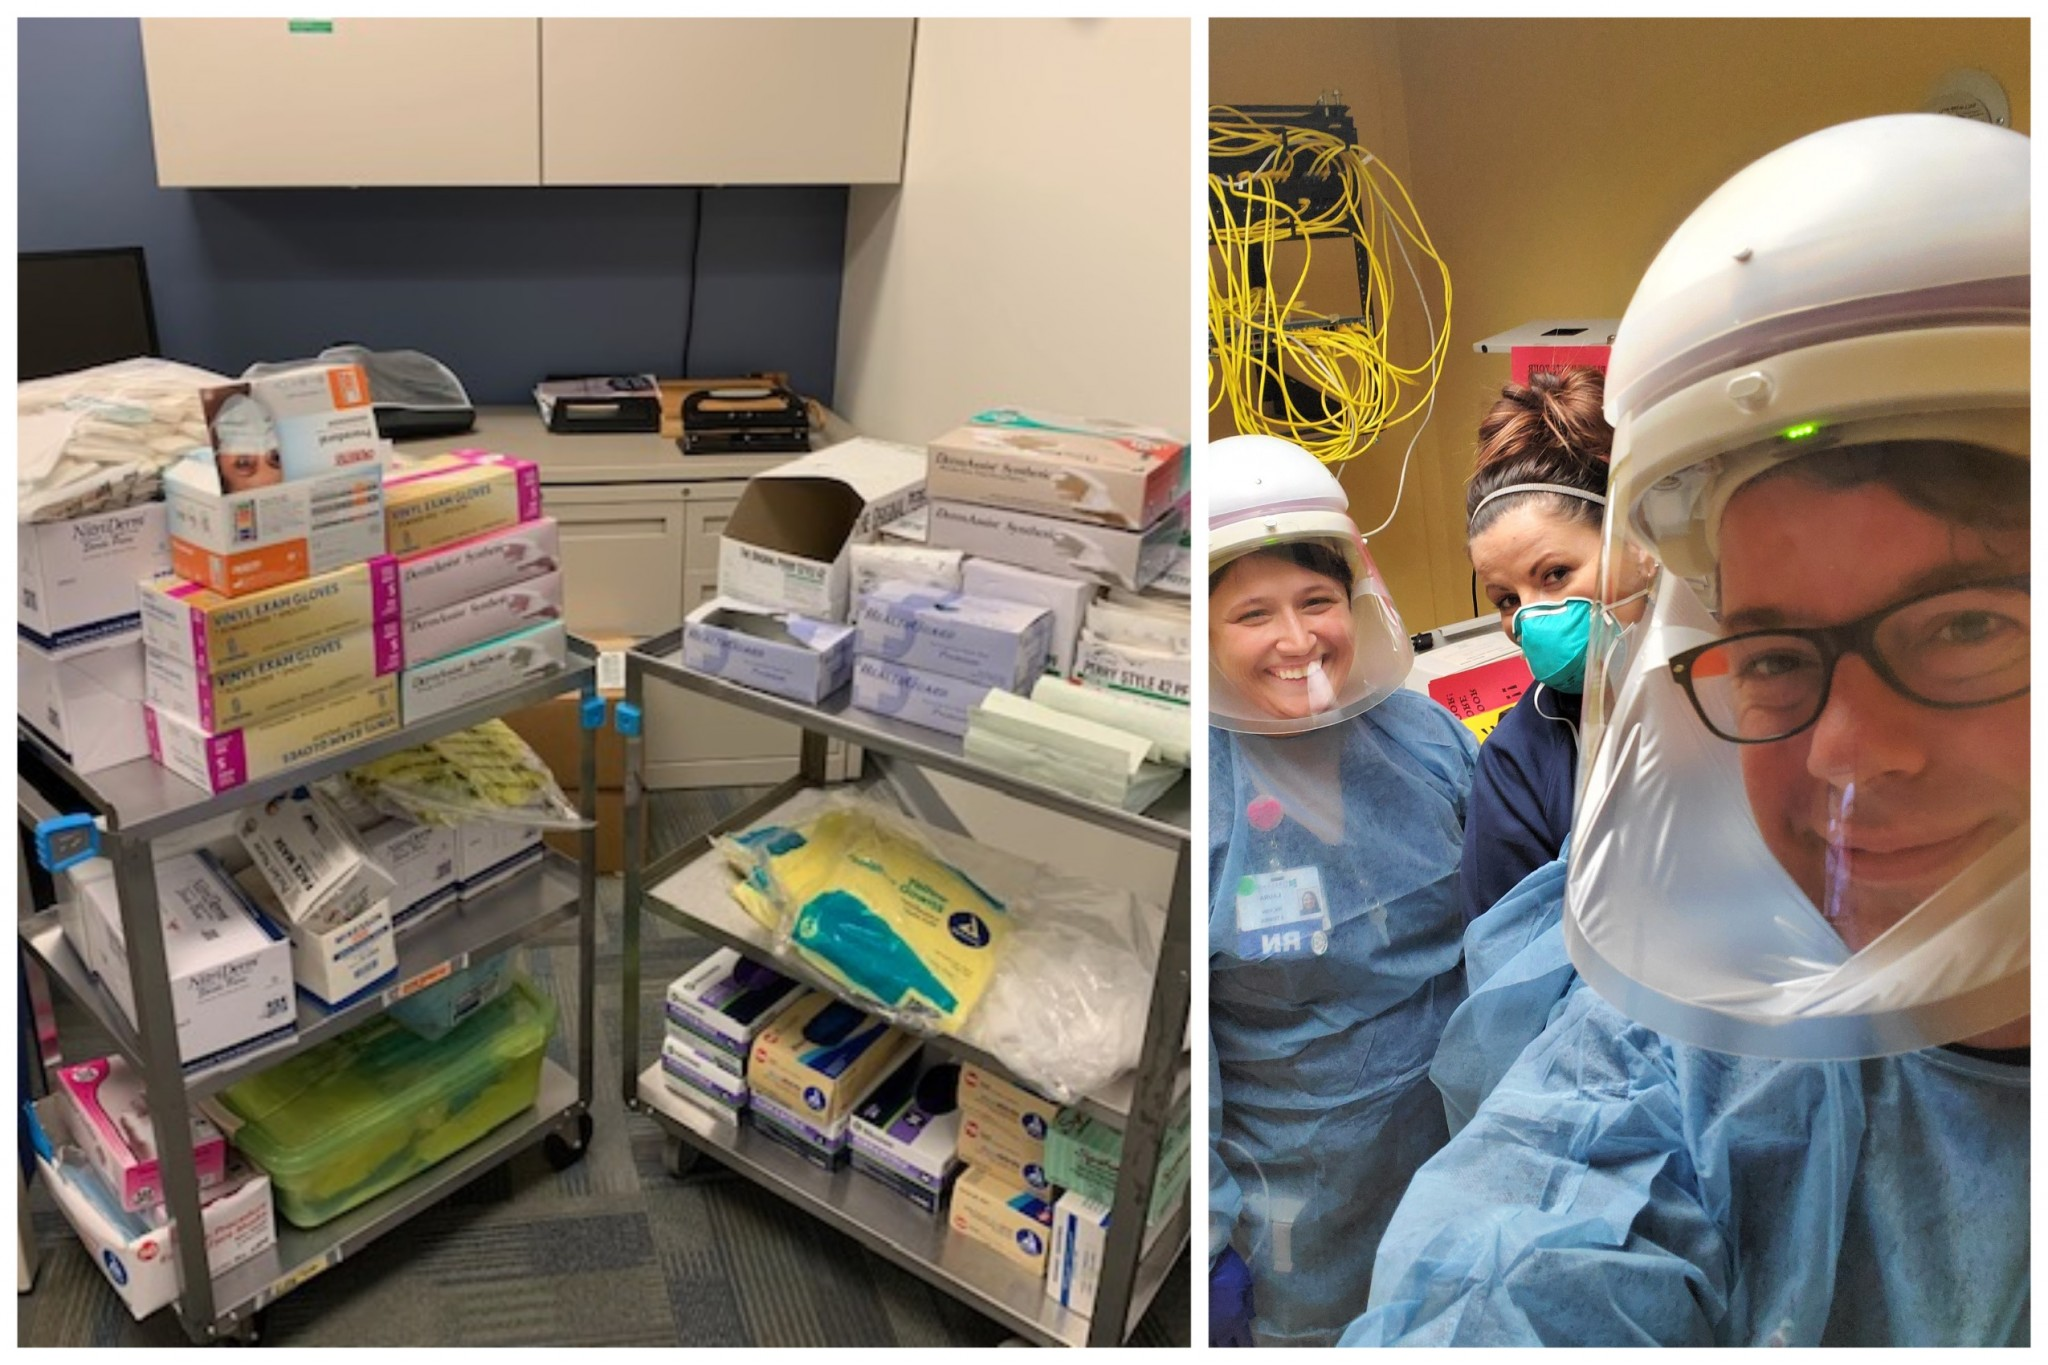 Left: PPE donations to ProMedica Memorial Hospital from the Allied Health, Nursing and Science (AHNS) division. Right: Nursing instructor Ryan Heichel (front) volunteering with others on the COVID-19 unit at Firelands Regional Medical Center. (Submitted photo)